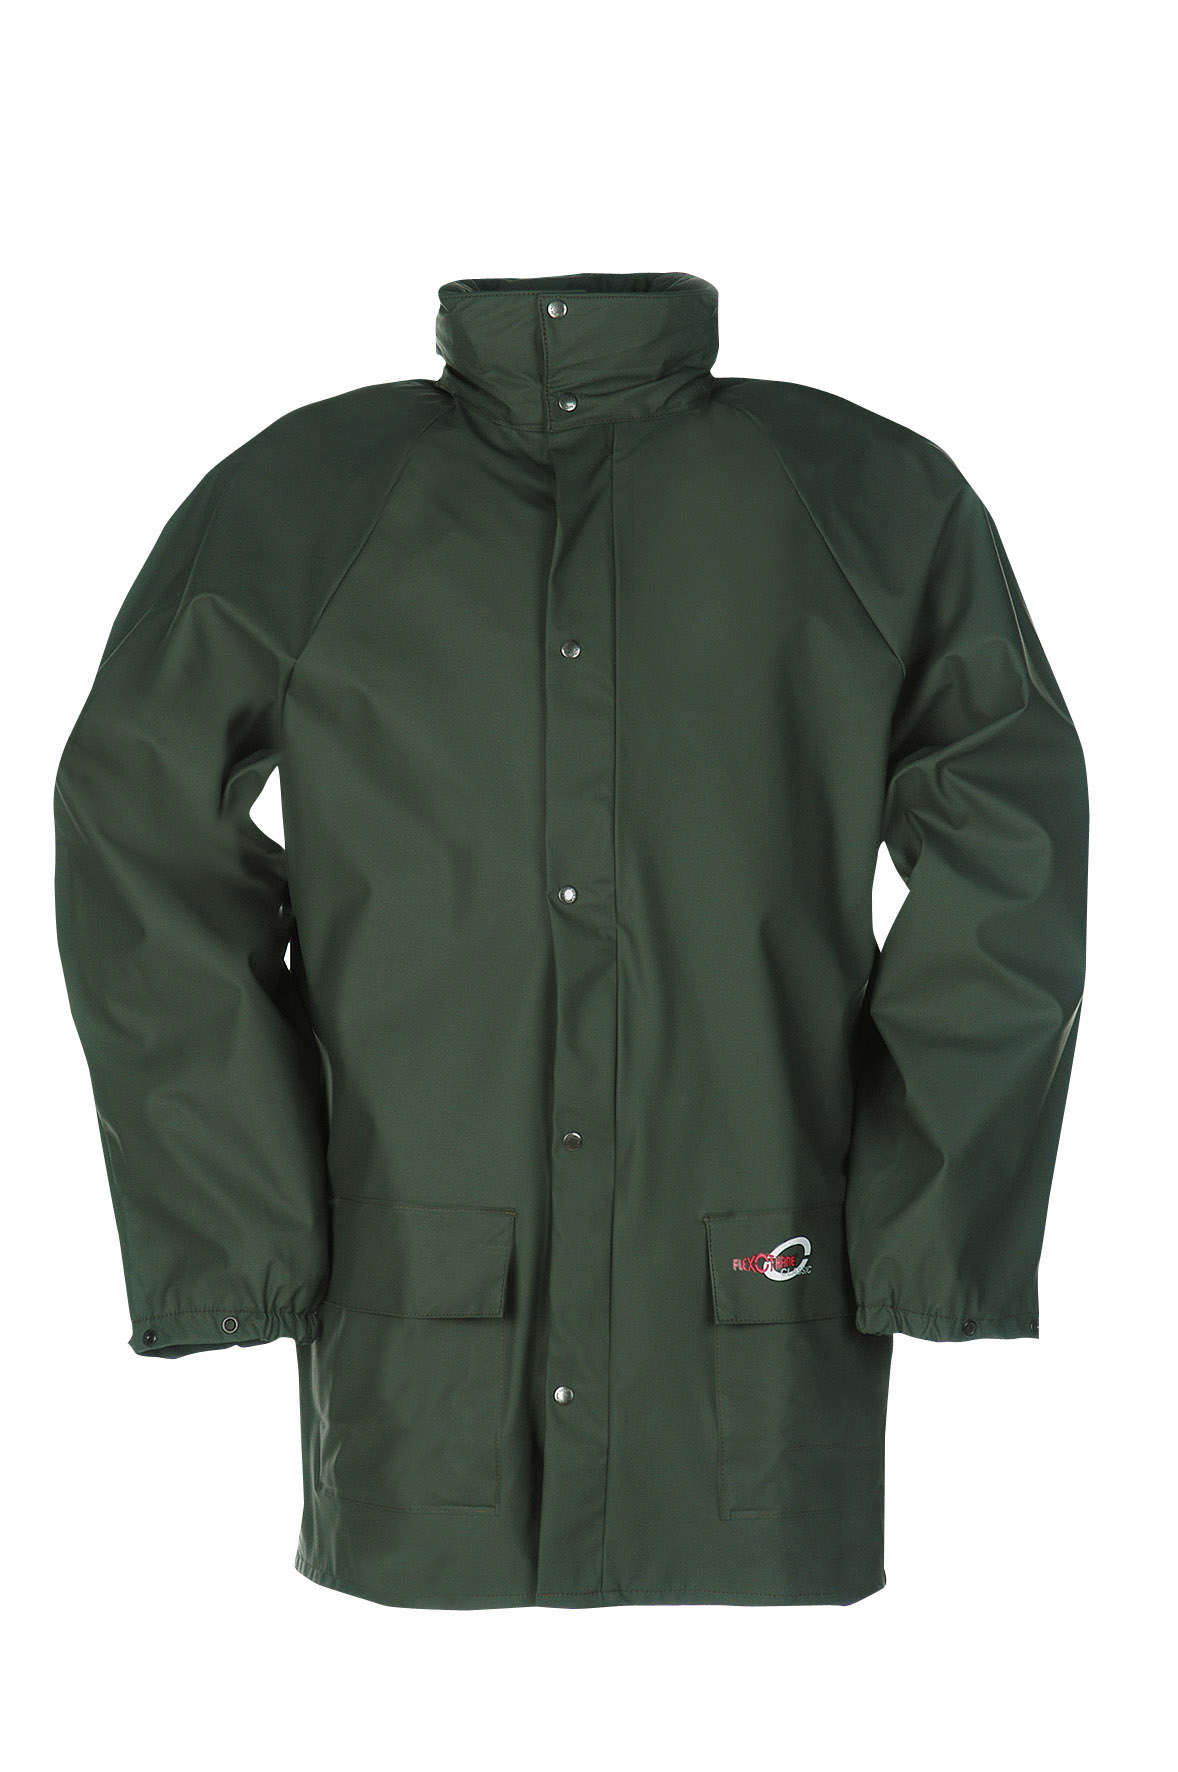 Hoggs of Fife Flexothane Waterproof Jacket